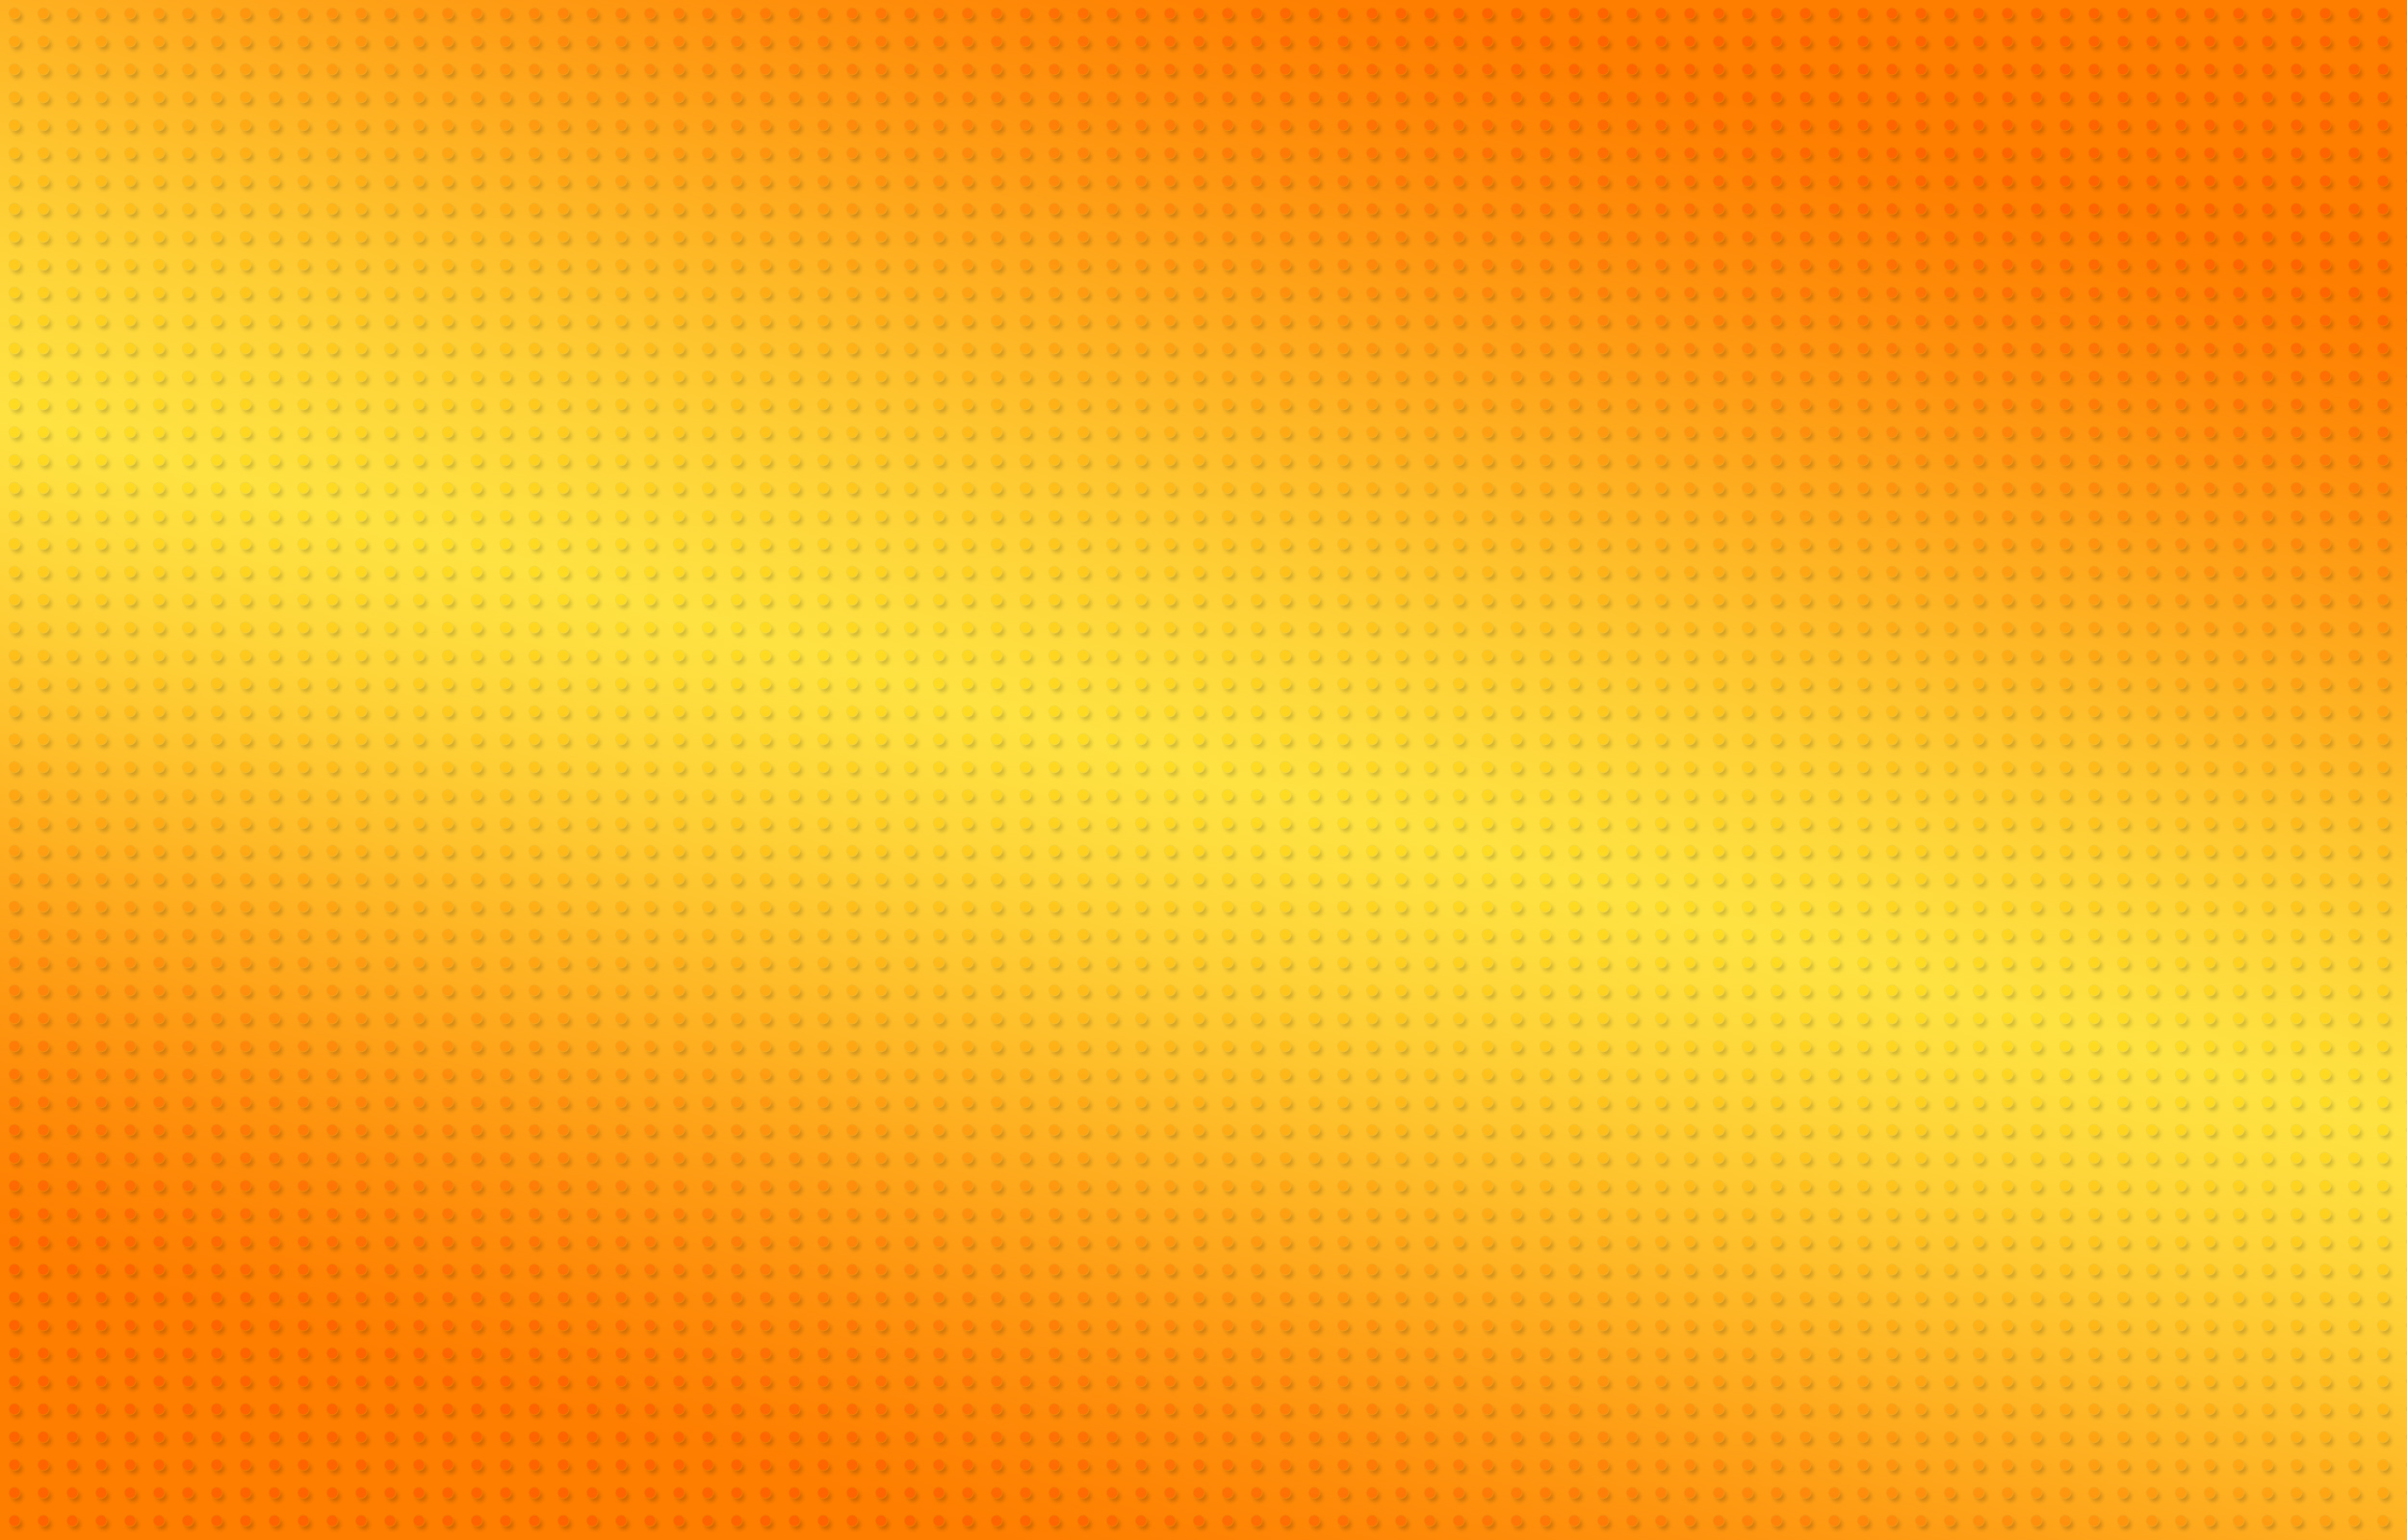 Free Orange Wallpaper 16381 2500x1600 px HDWallSourcecom